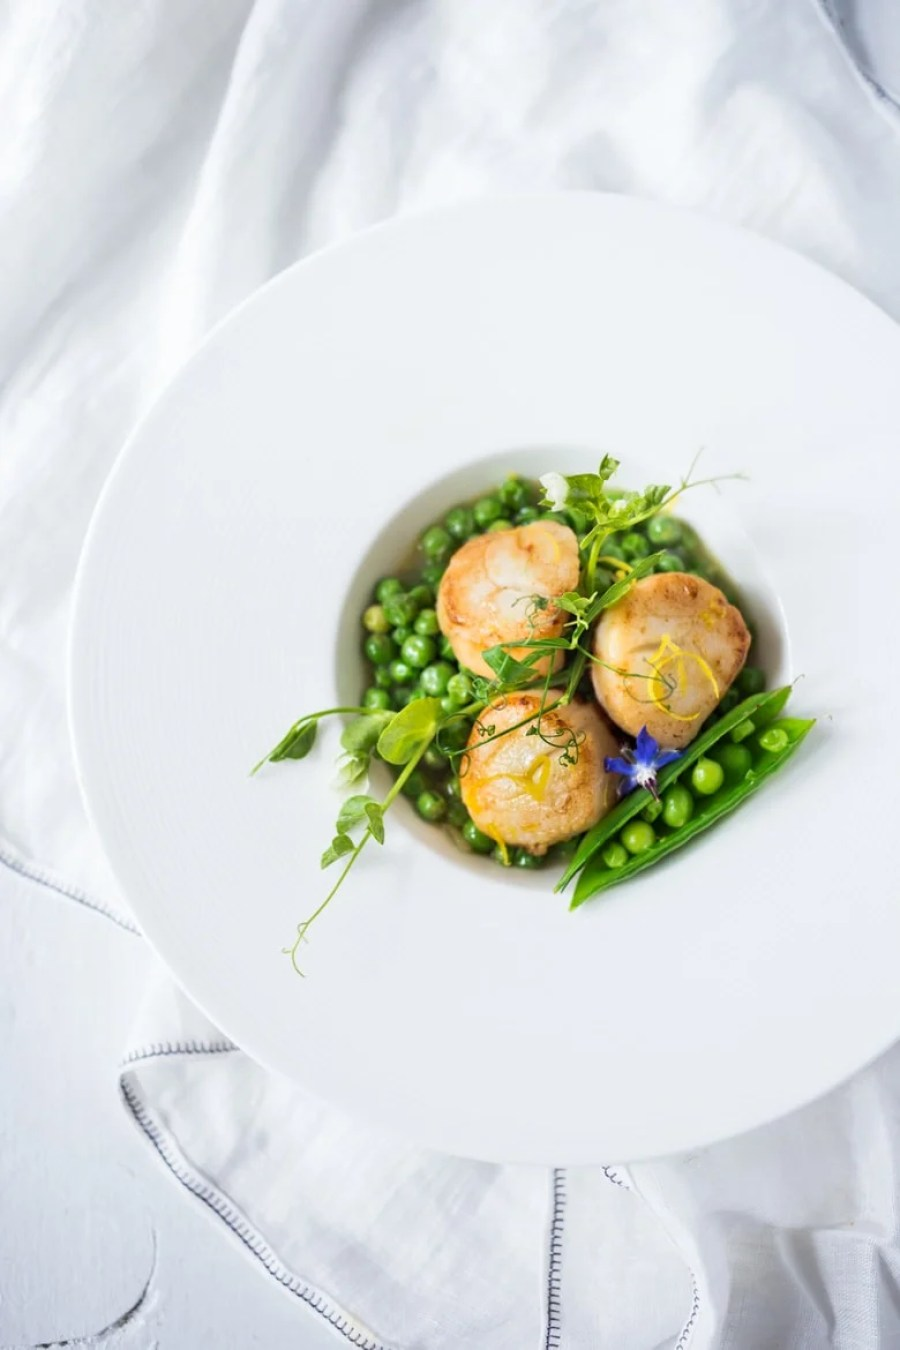 Seared Scallops with Spring peas, tarragon and truffle oil- a light and elegant meal, perfect for entertaining or special occasions.   www.feastingathome.com